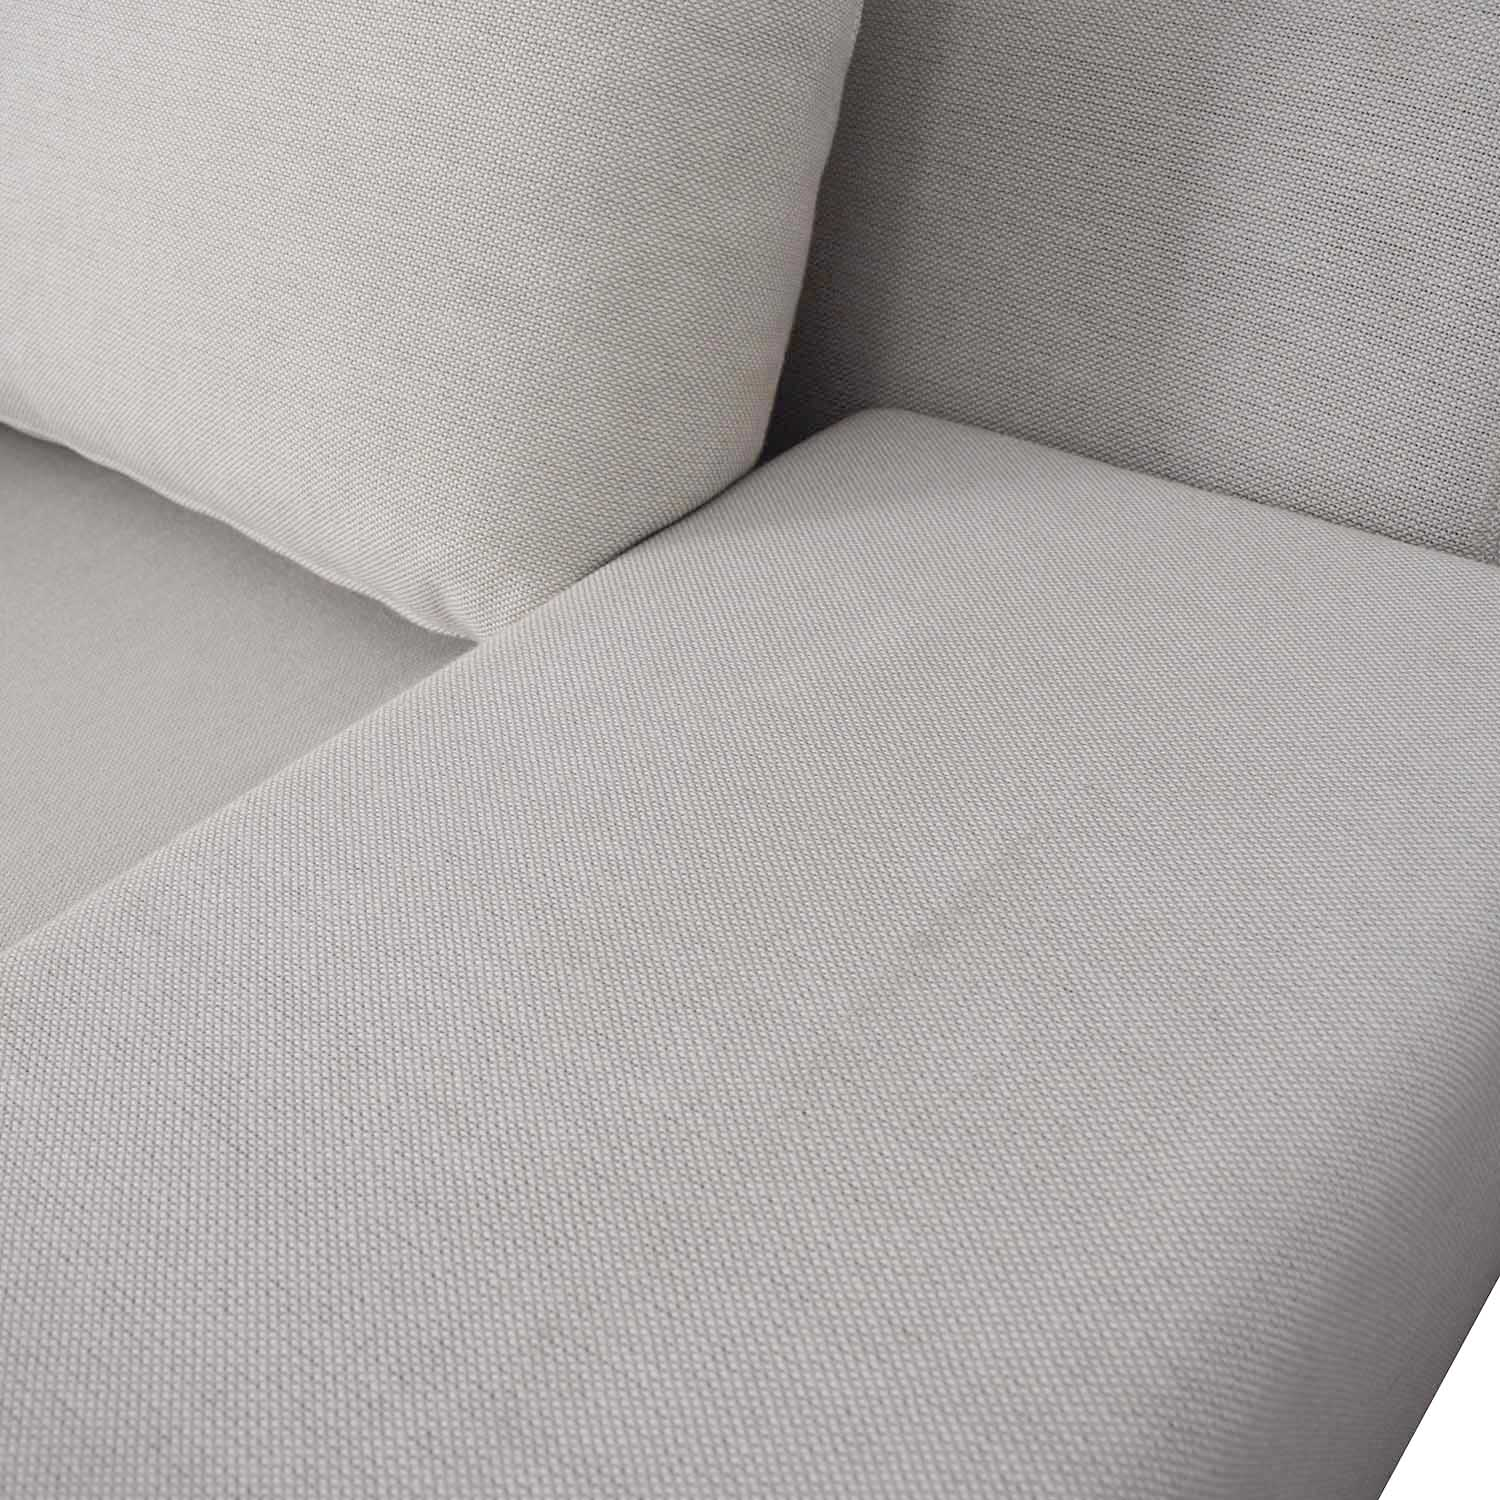 Viccarbe Viccarbe White Sectional price